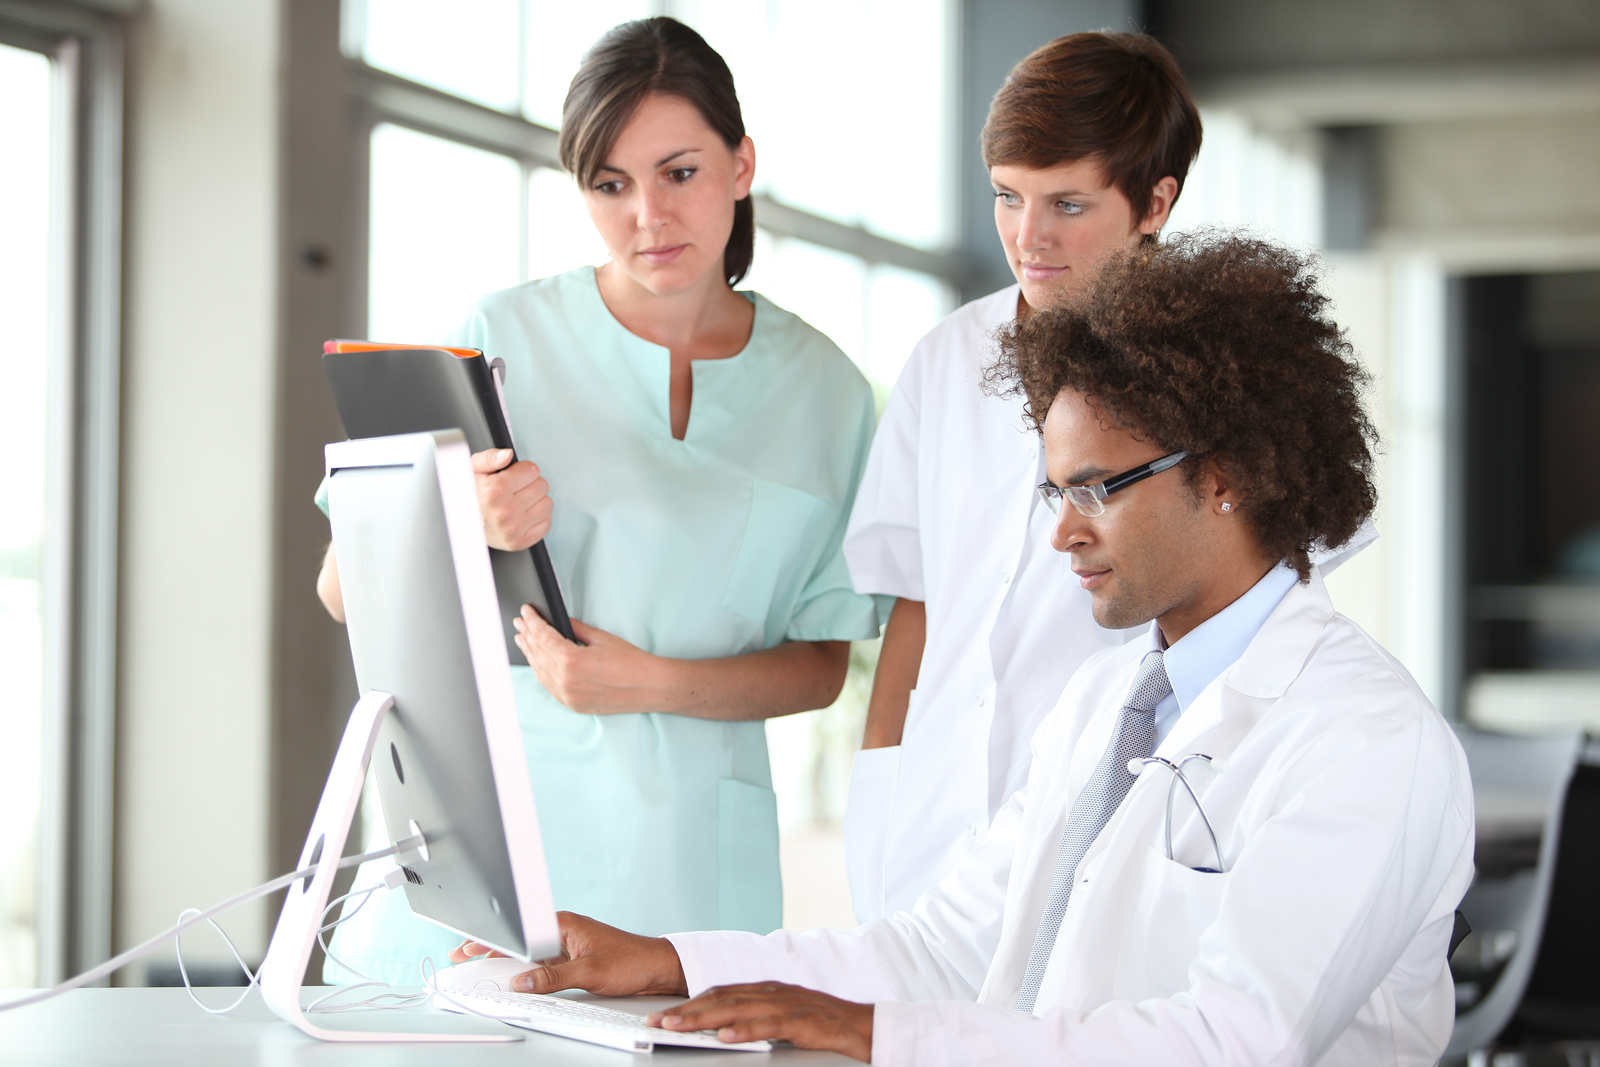 ICD-10 Conversion Process: 7 Steps to Help You Prepare for Dual Coding